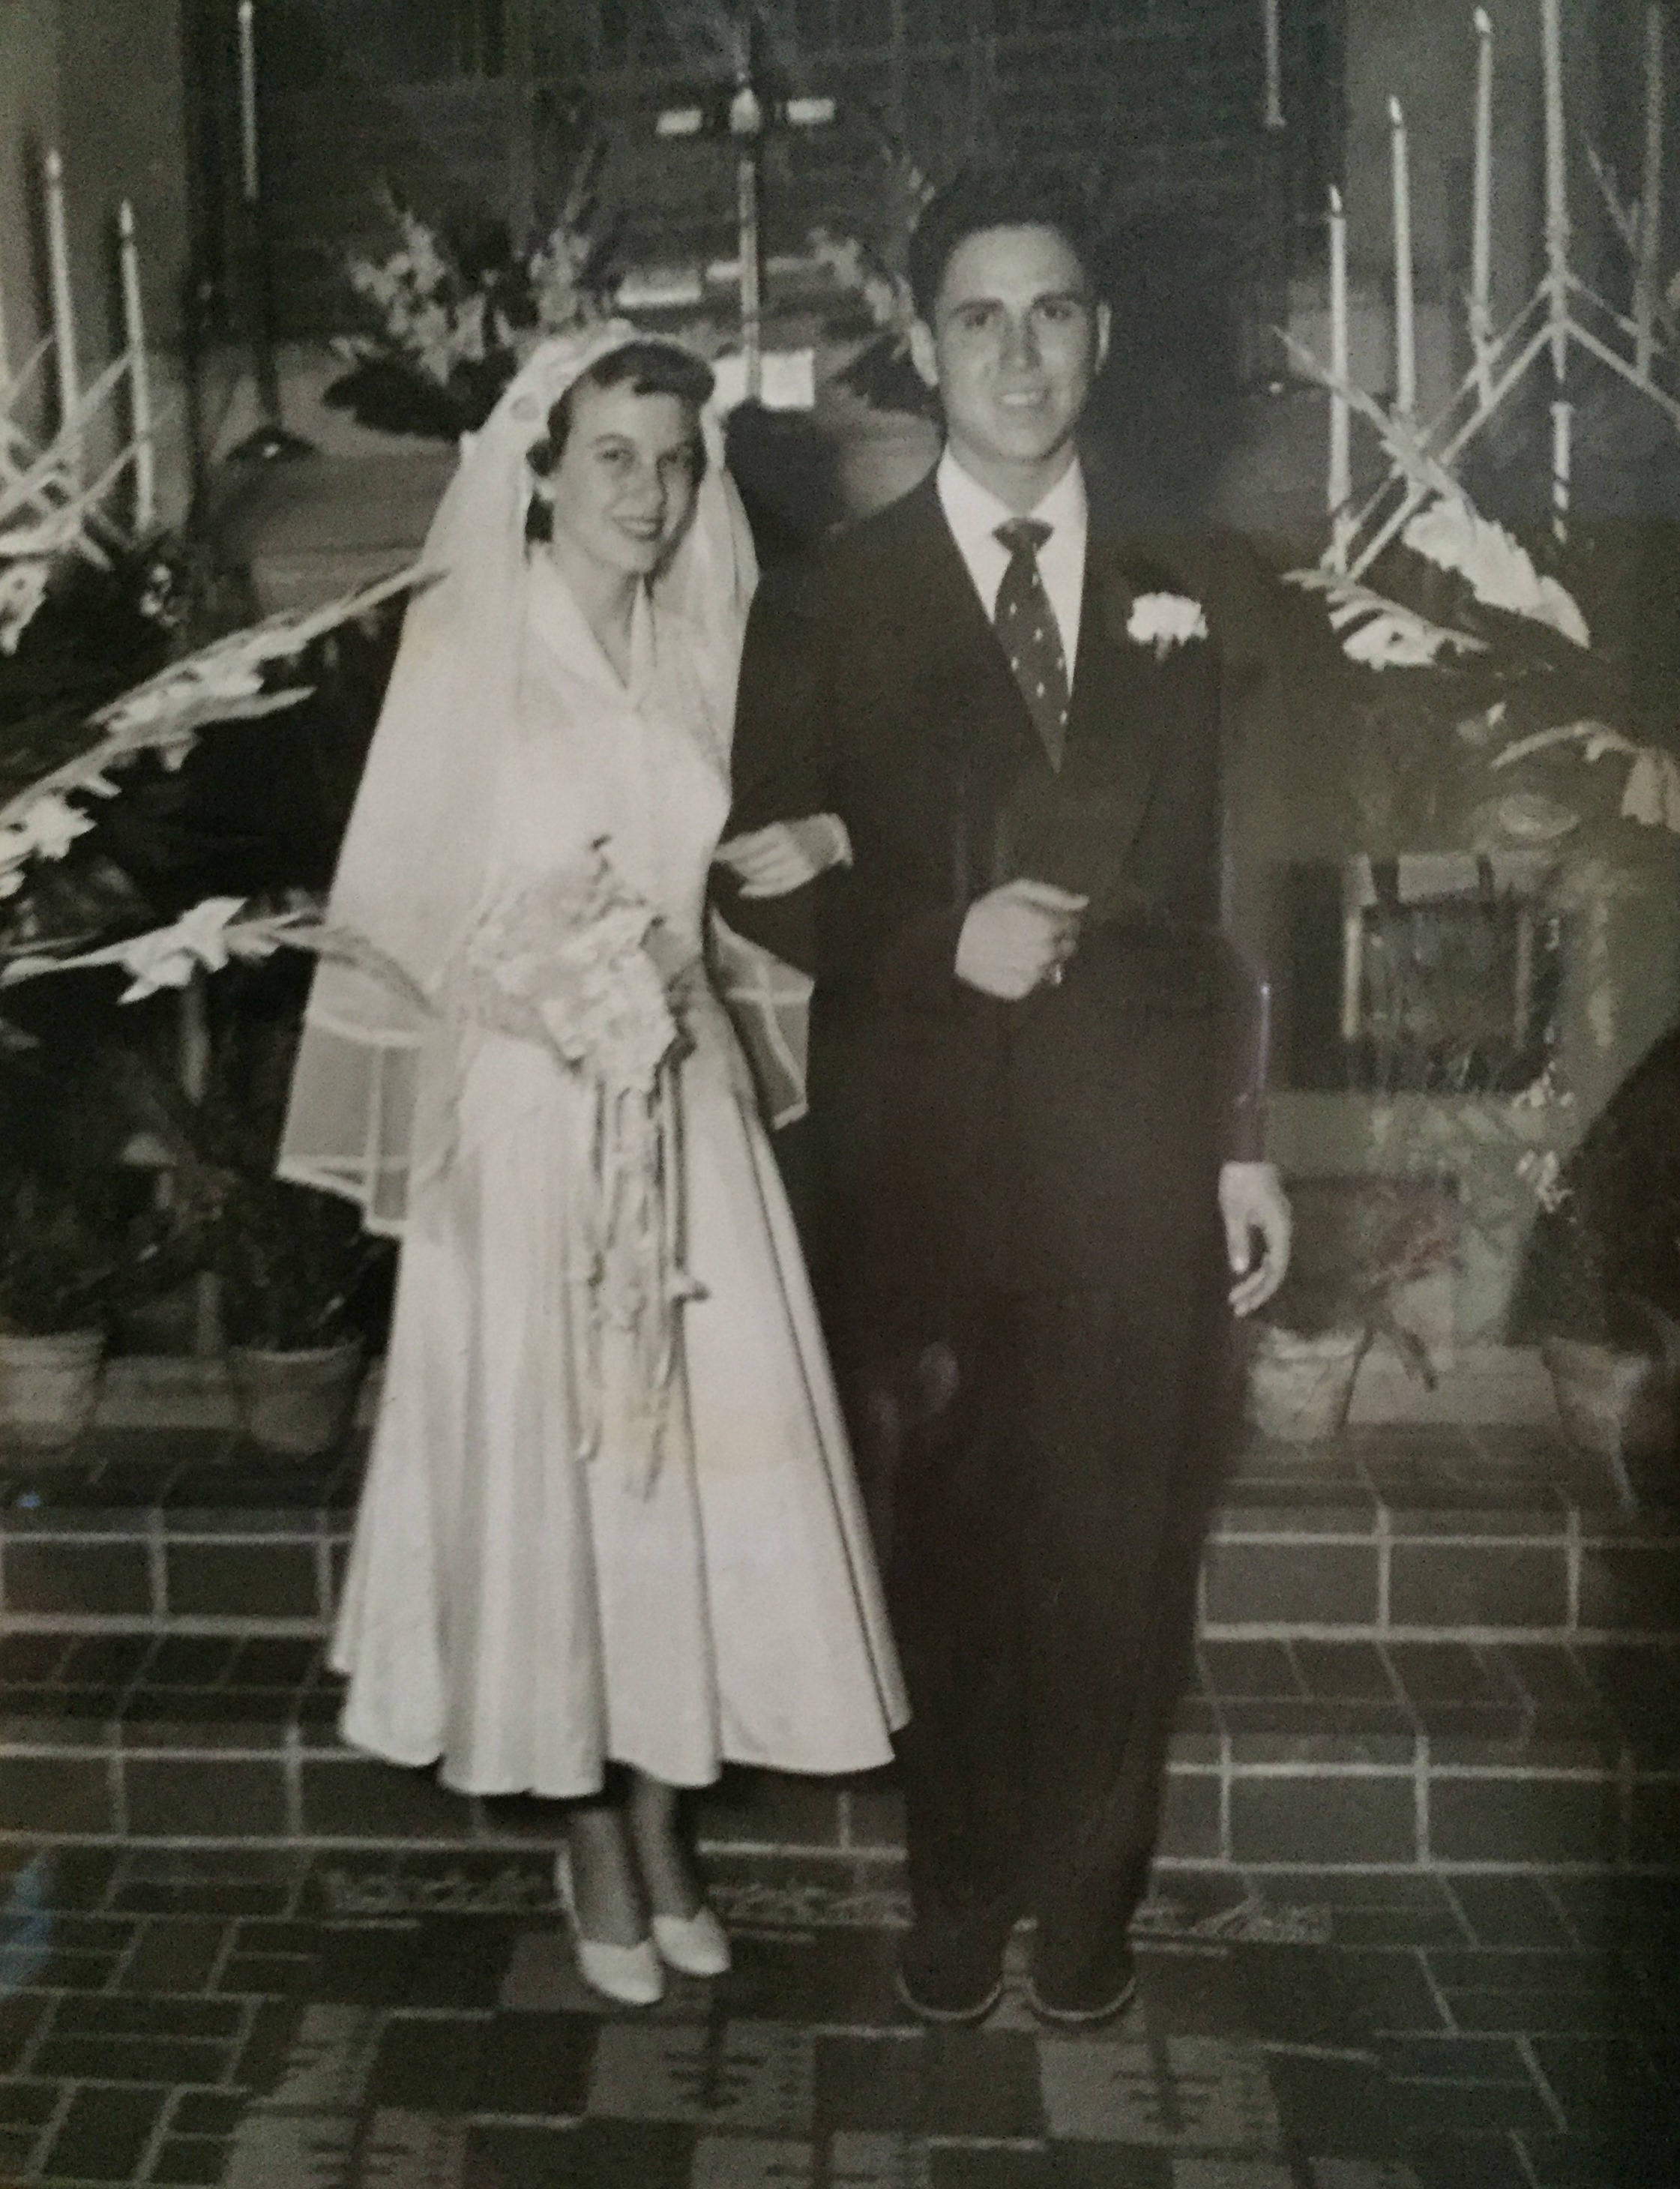 David and Peggy married at the Little Chapel in the Woods 9/27/1951